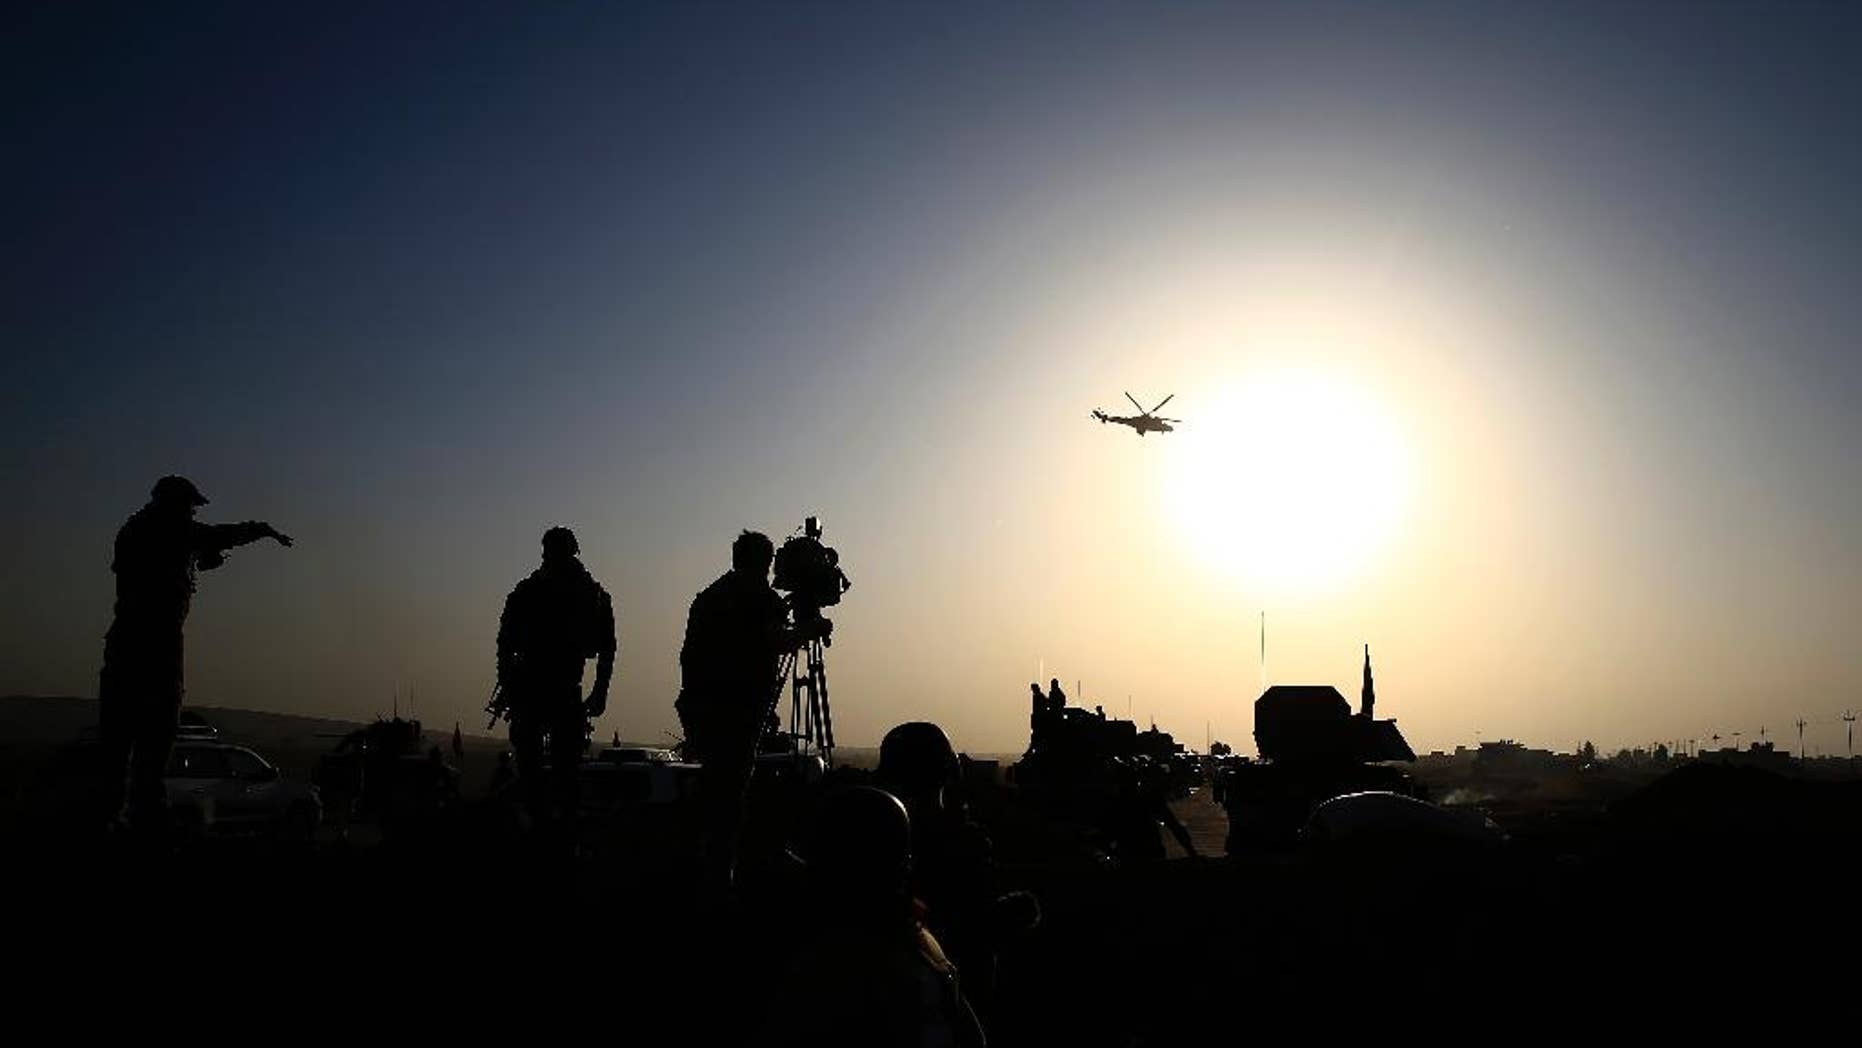 An Iraqi military helicopter flies over the frontline near Bartella, Iraq on Thursday, Oct. 20, 2016. Iraqi special forces charged into the Mosul battle Thursday with a pre-dawn advance on the nearby town held by the Islamic State group, a key part of a multi-pronged assault on eastern approaches to the besieged city. (AP Photo/Bram Janssen)